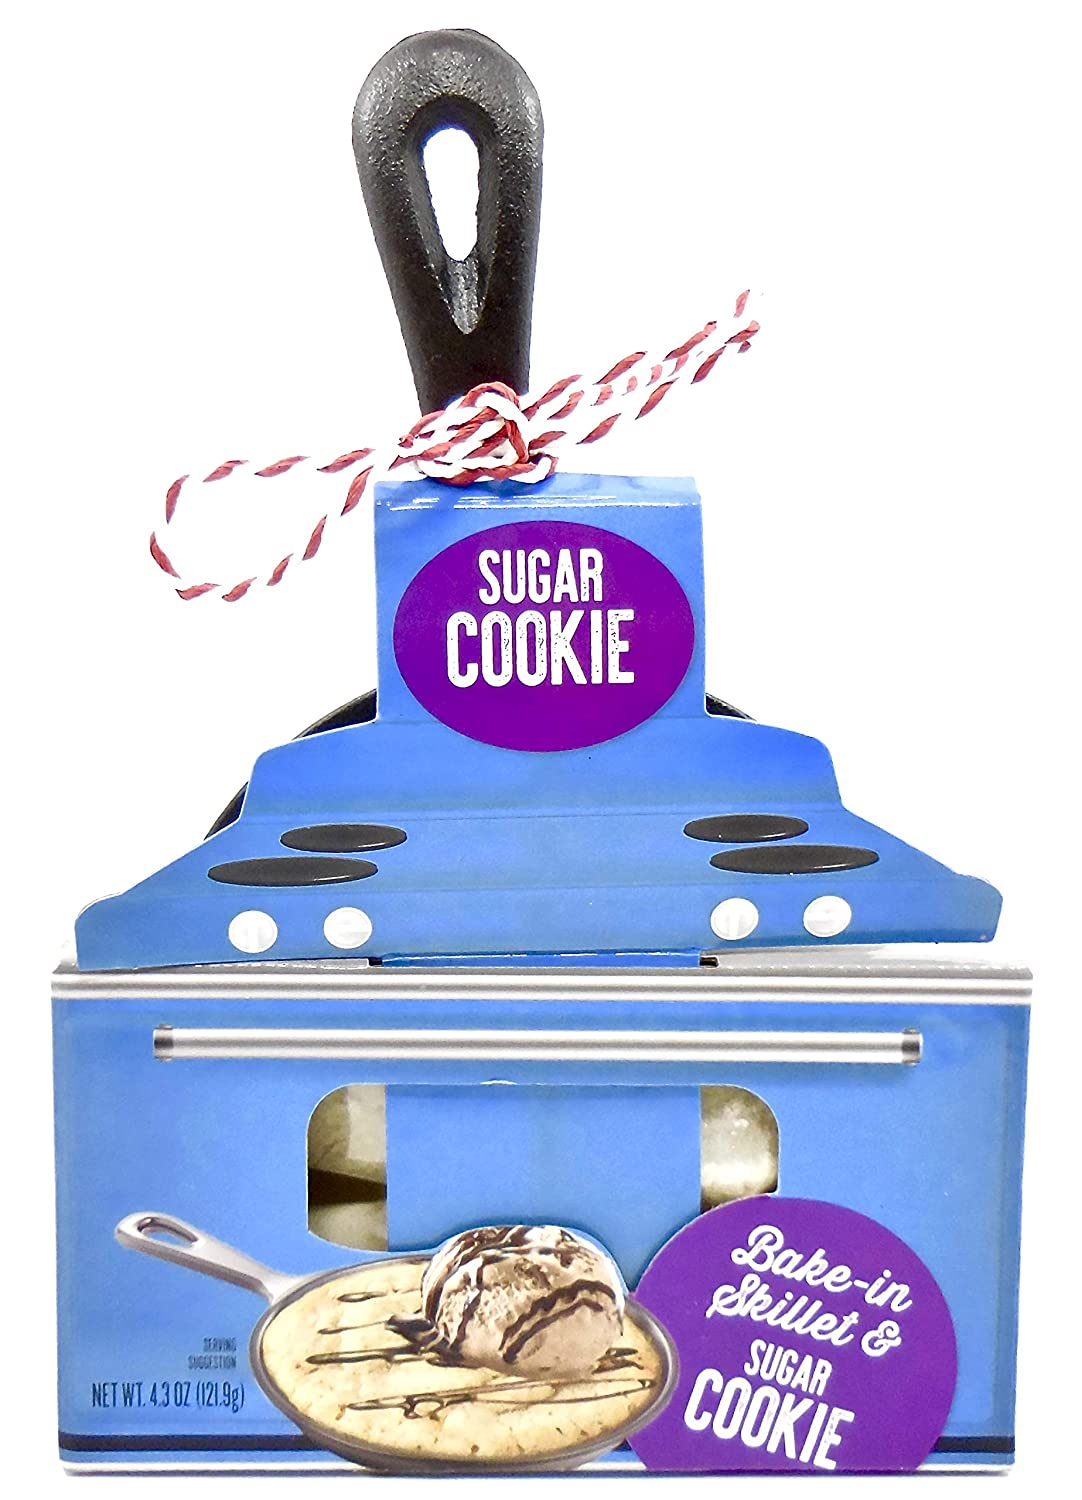 Sugar Cookie Bake-in Skillet,Mini Cast Iron Skillet, Mix,Directions